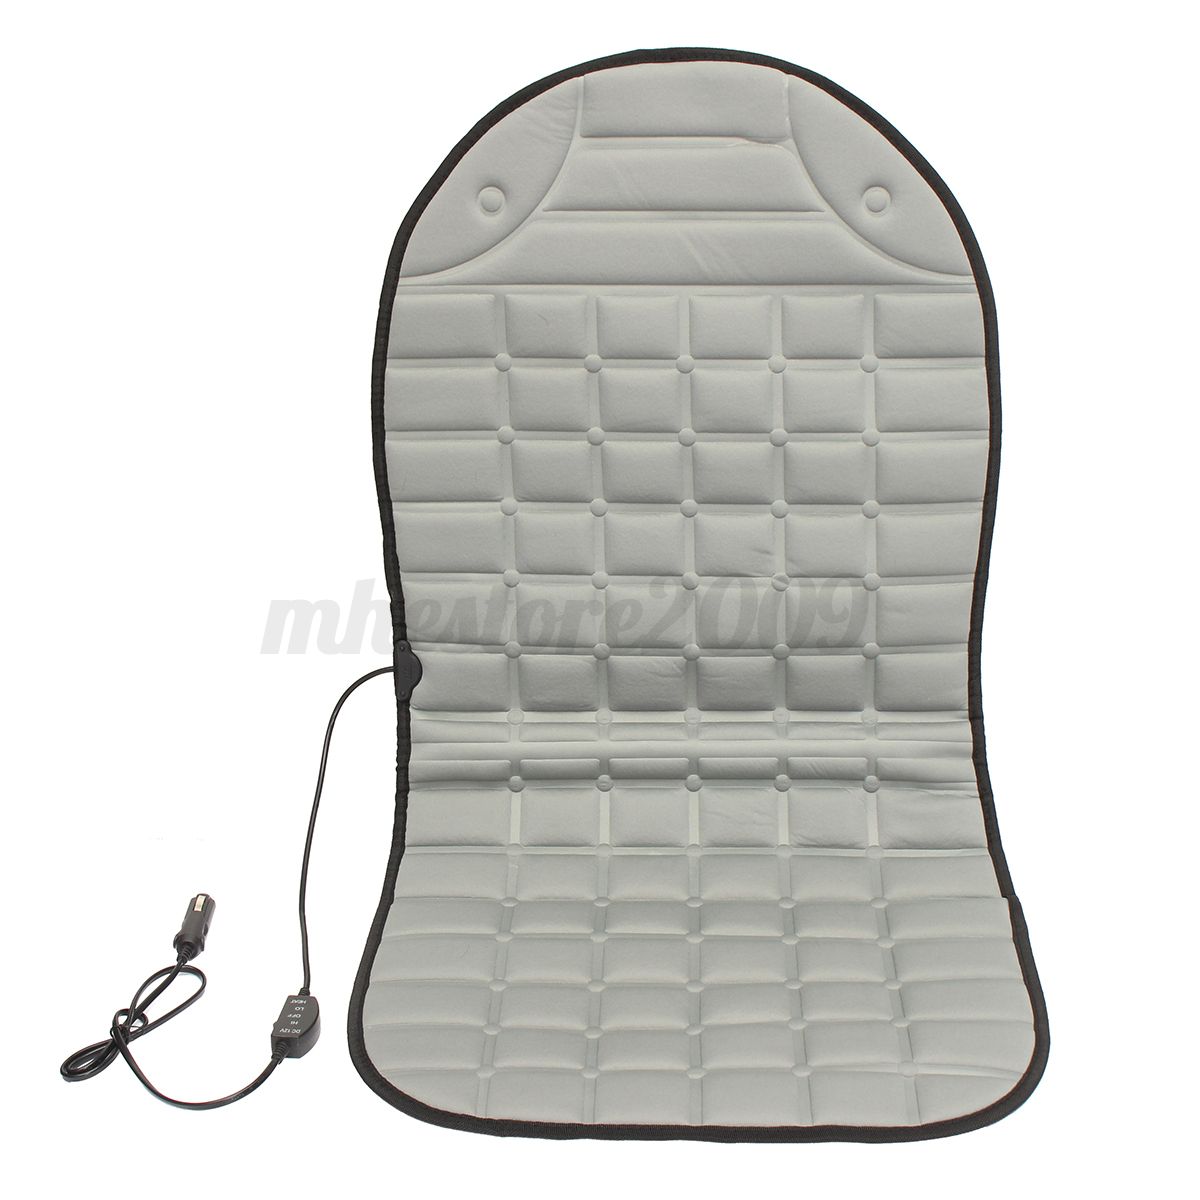 universal 12v car electric heated heating front seat cushion cover warmer pad ebay. Black Bedroom Furniture Sets. Home Design Ideas